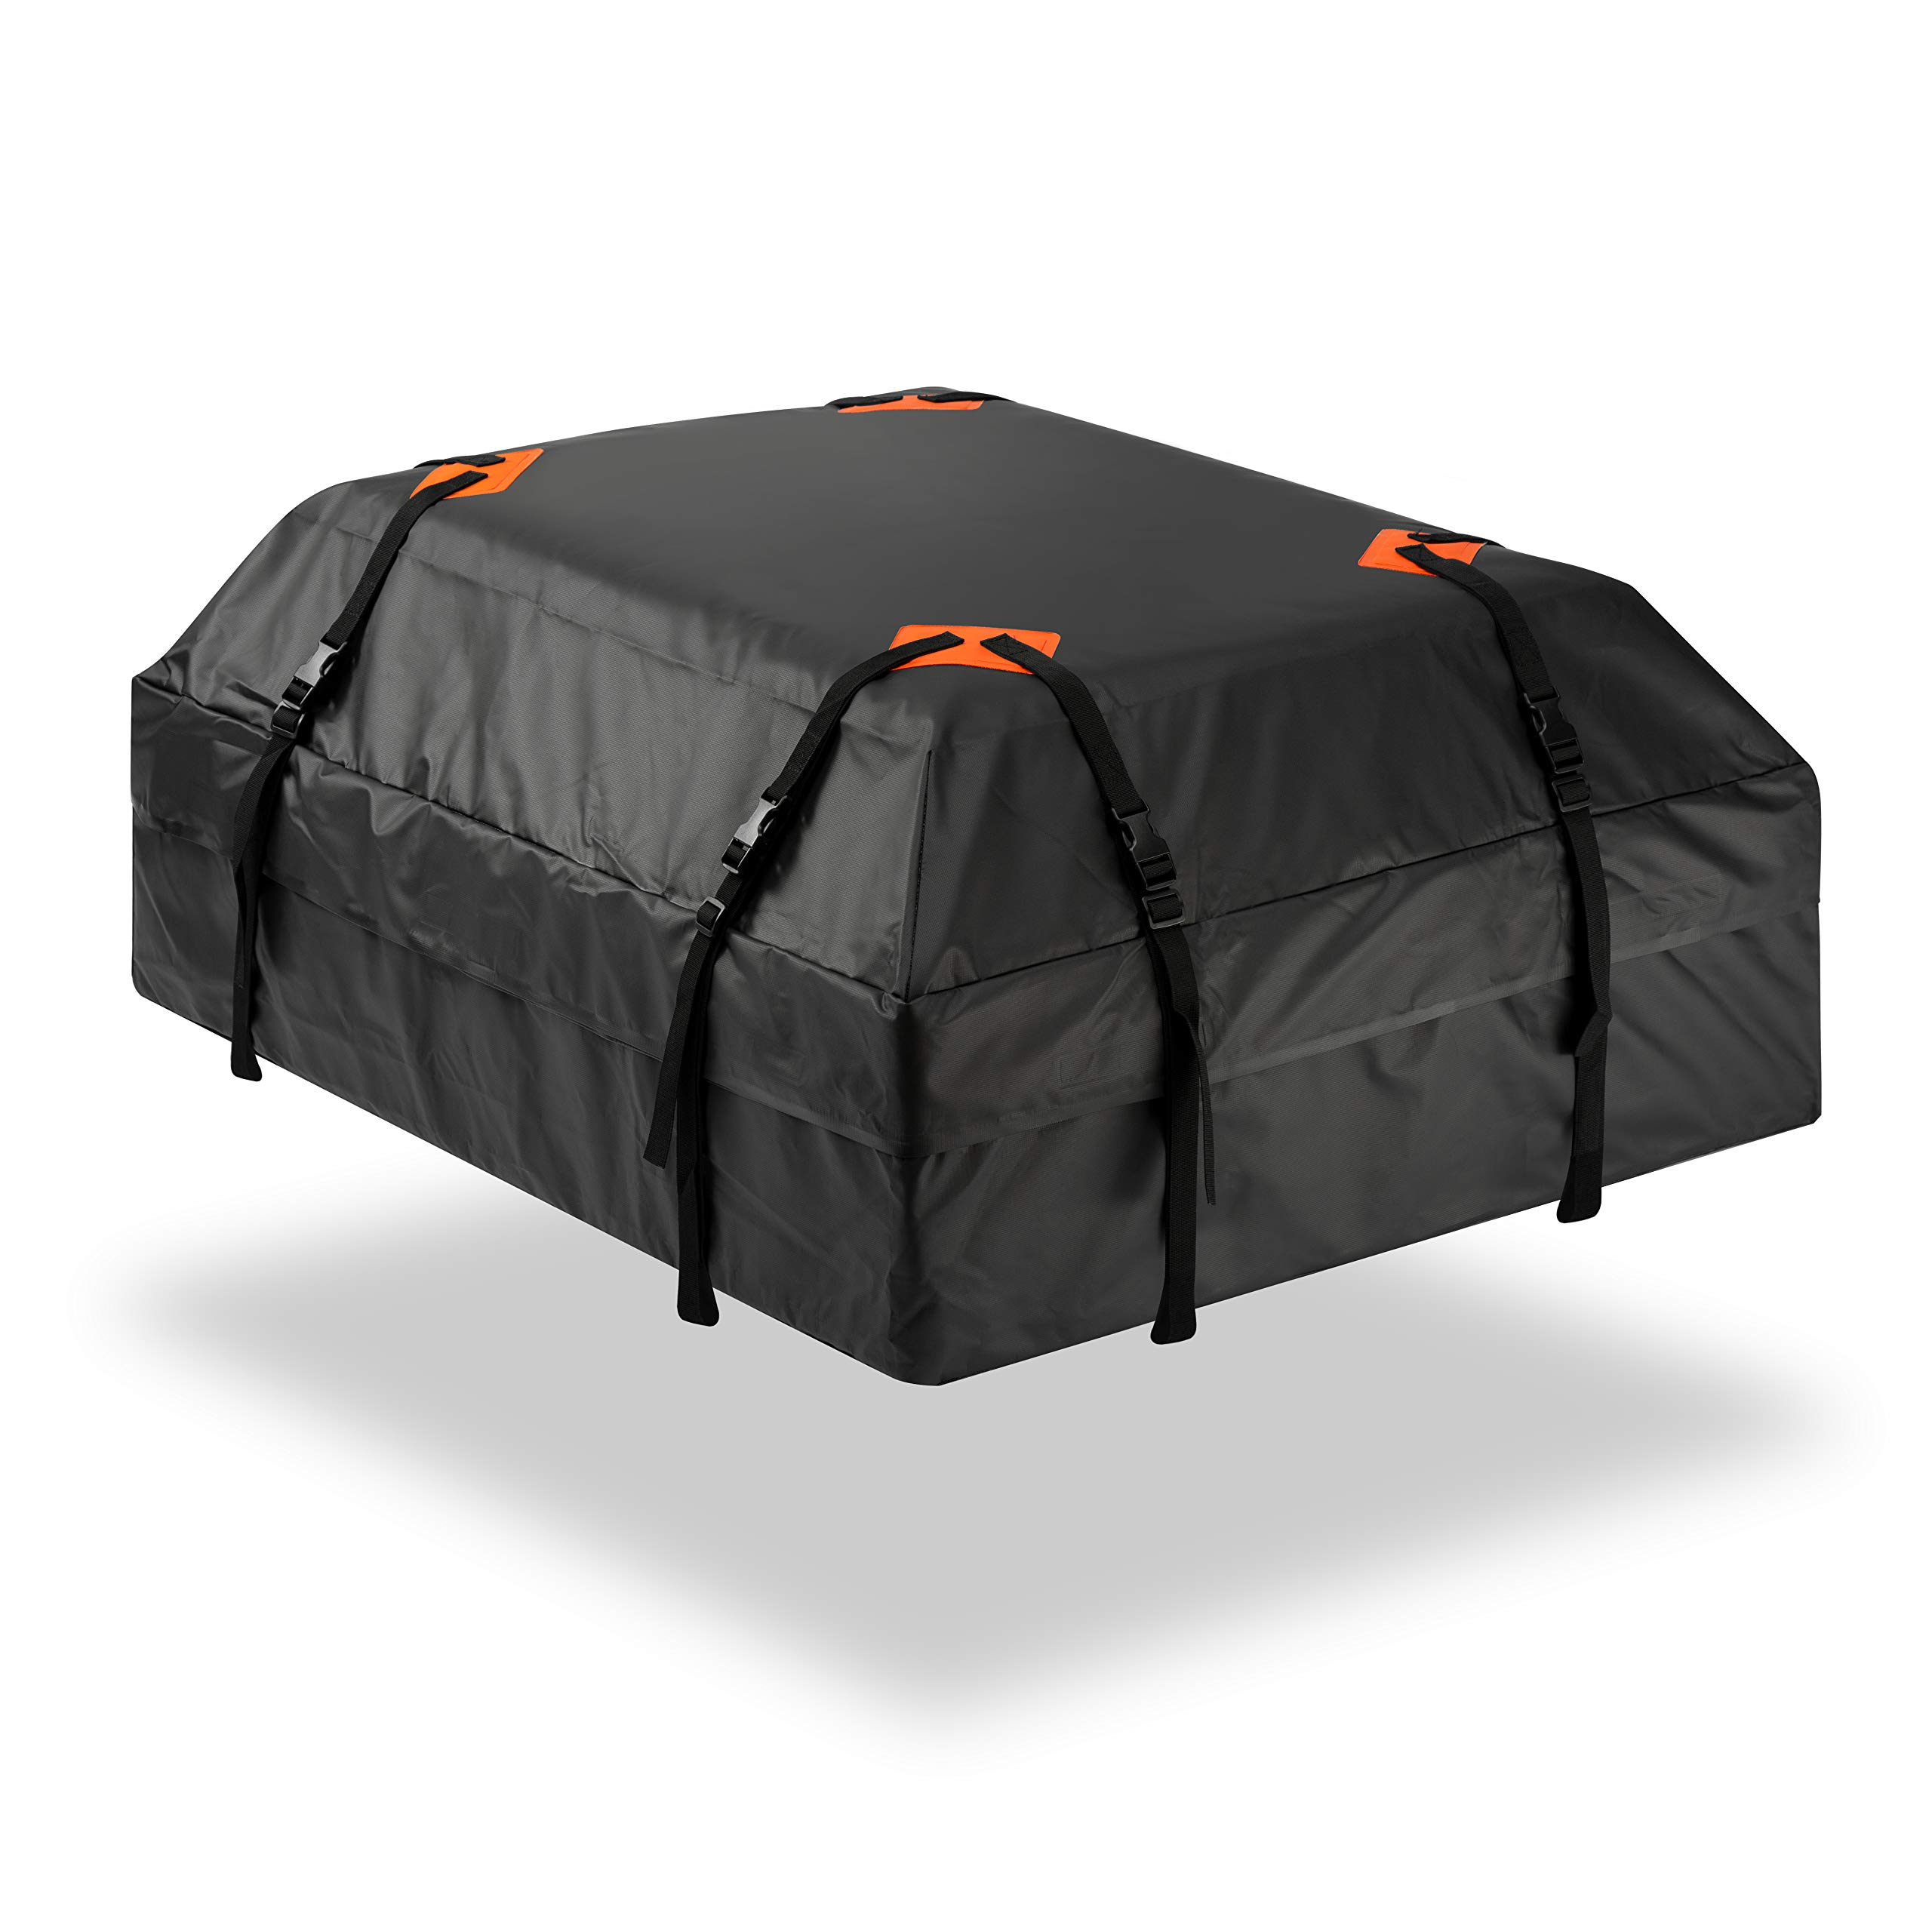 Durable Roof Top Waterproof Cargo Bag - Zone Tech Classic Black 15 Cubic Feet Premium Quality Universal Waterproof Fold-able Leak Proof Traveling Roof Top Car Bag by ZONETECH